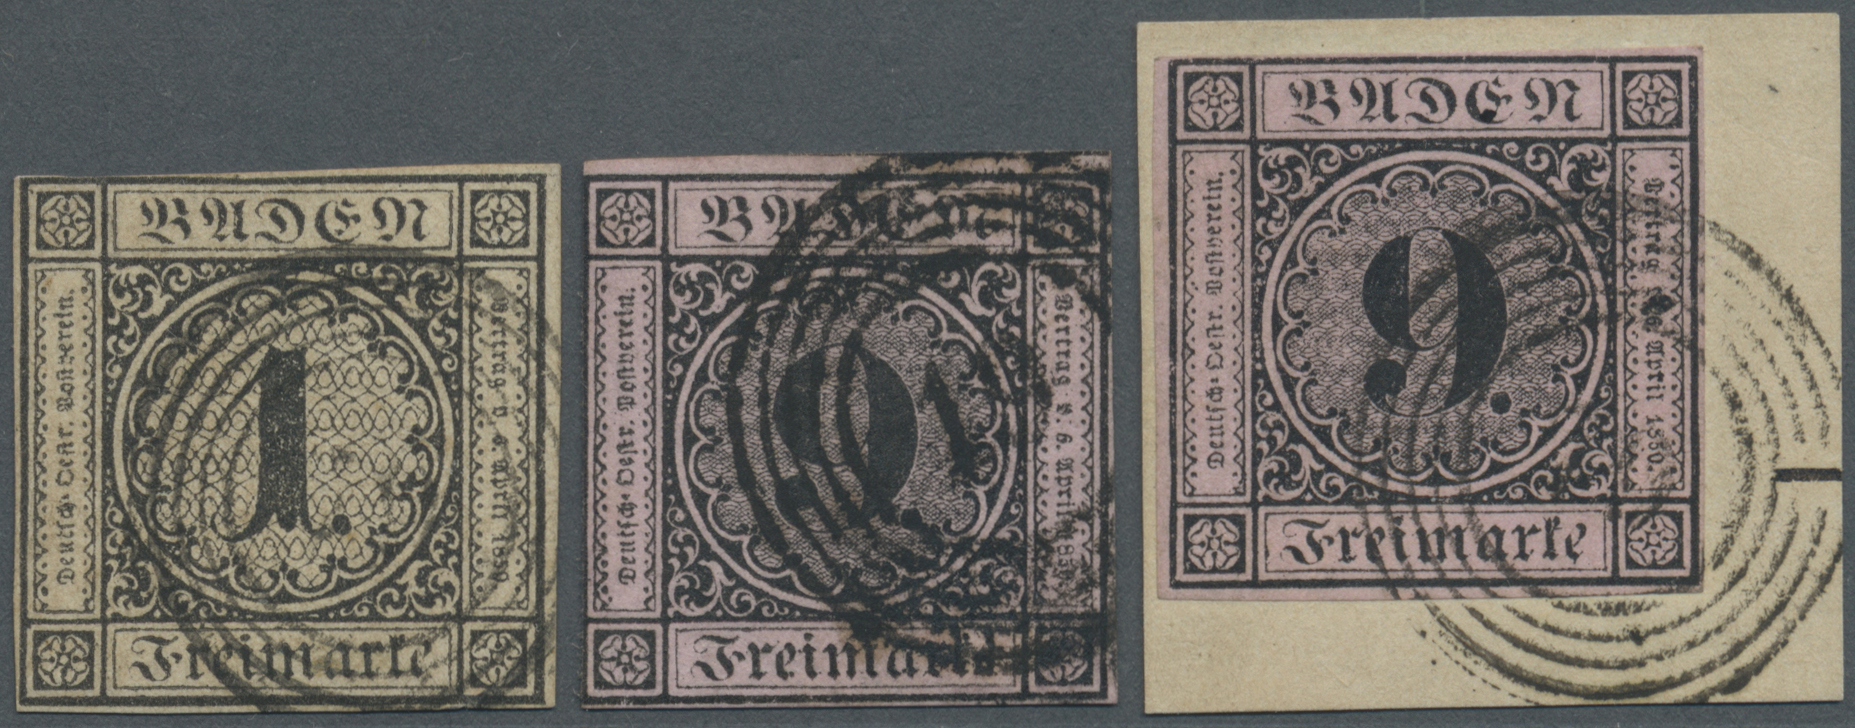 Lot 17008 - Baden - Marken und Briefe  -  Auktionshaus Christoph Gärtner GmbH & Co. KG Auction #40 Germany, Picture Post Cards, Collections Overseas, Thematics